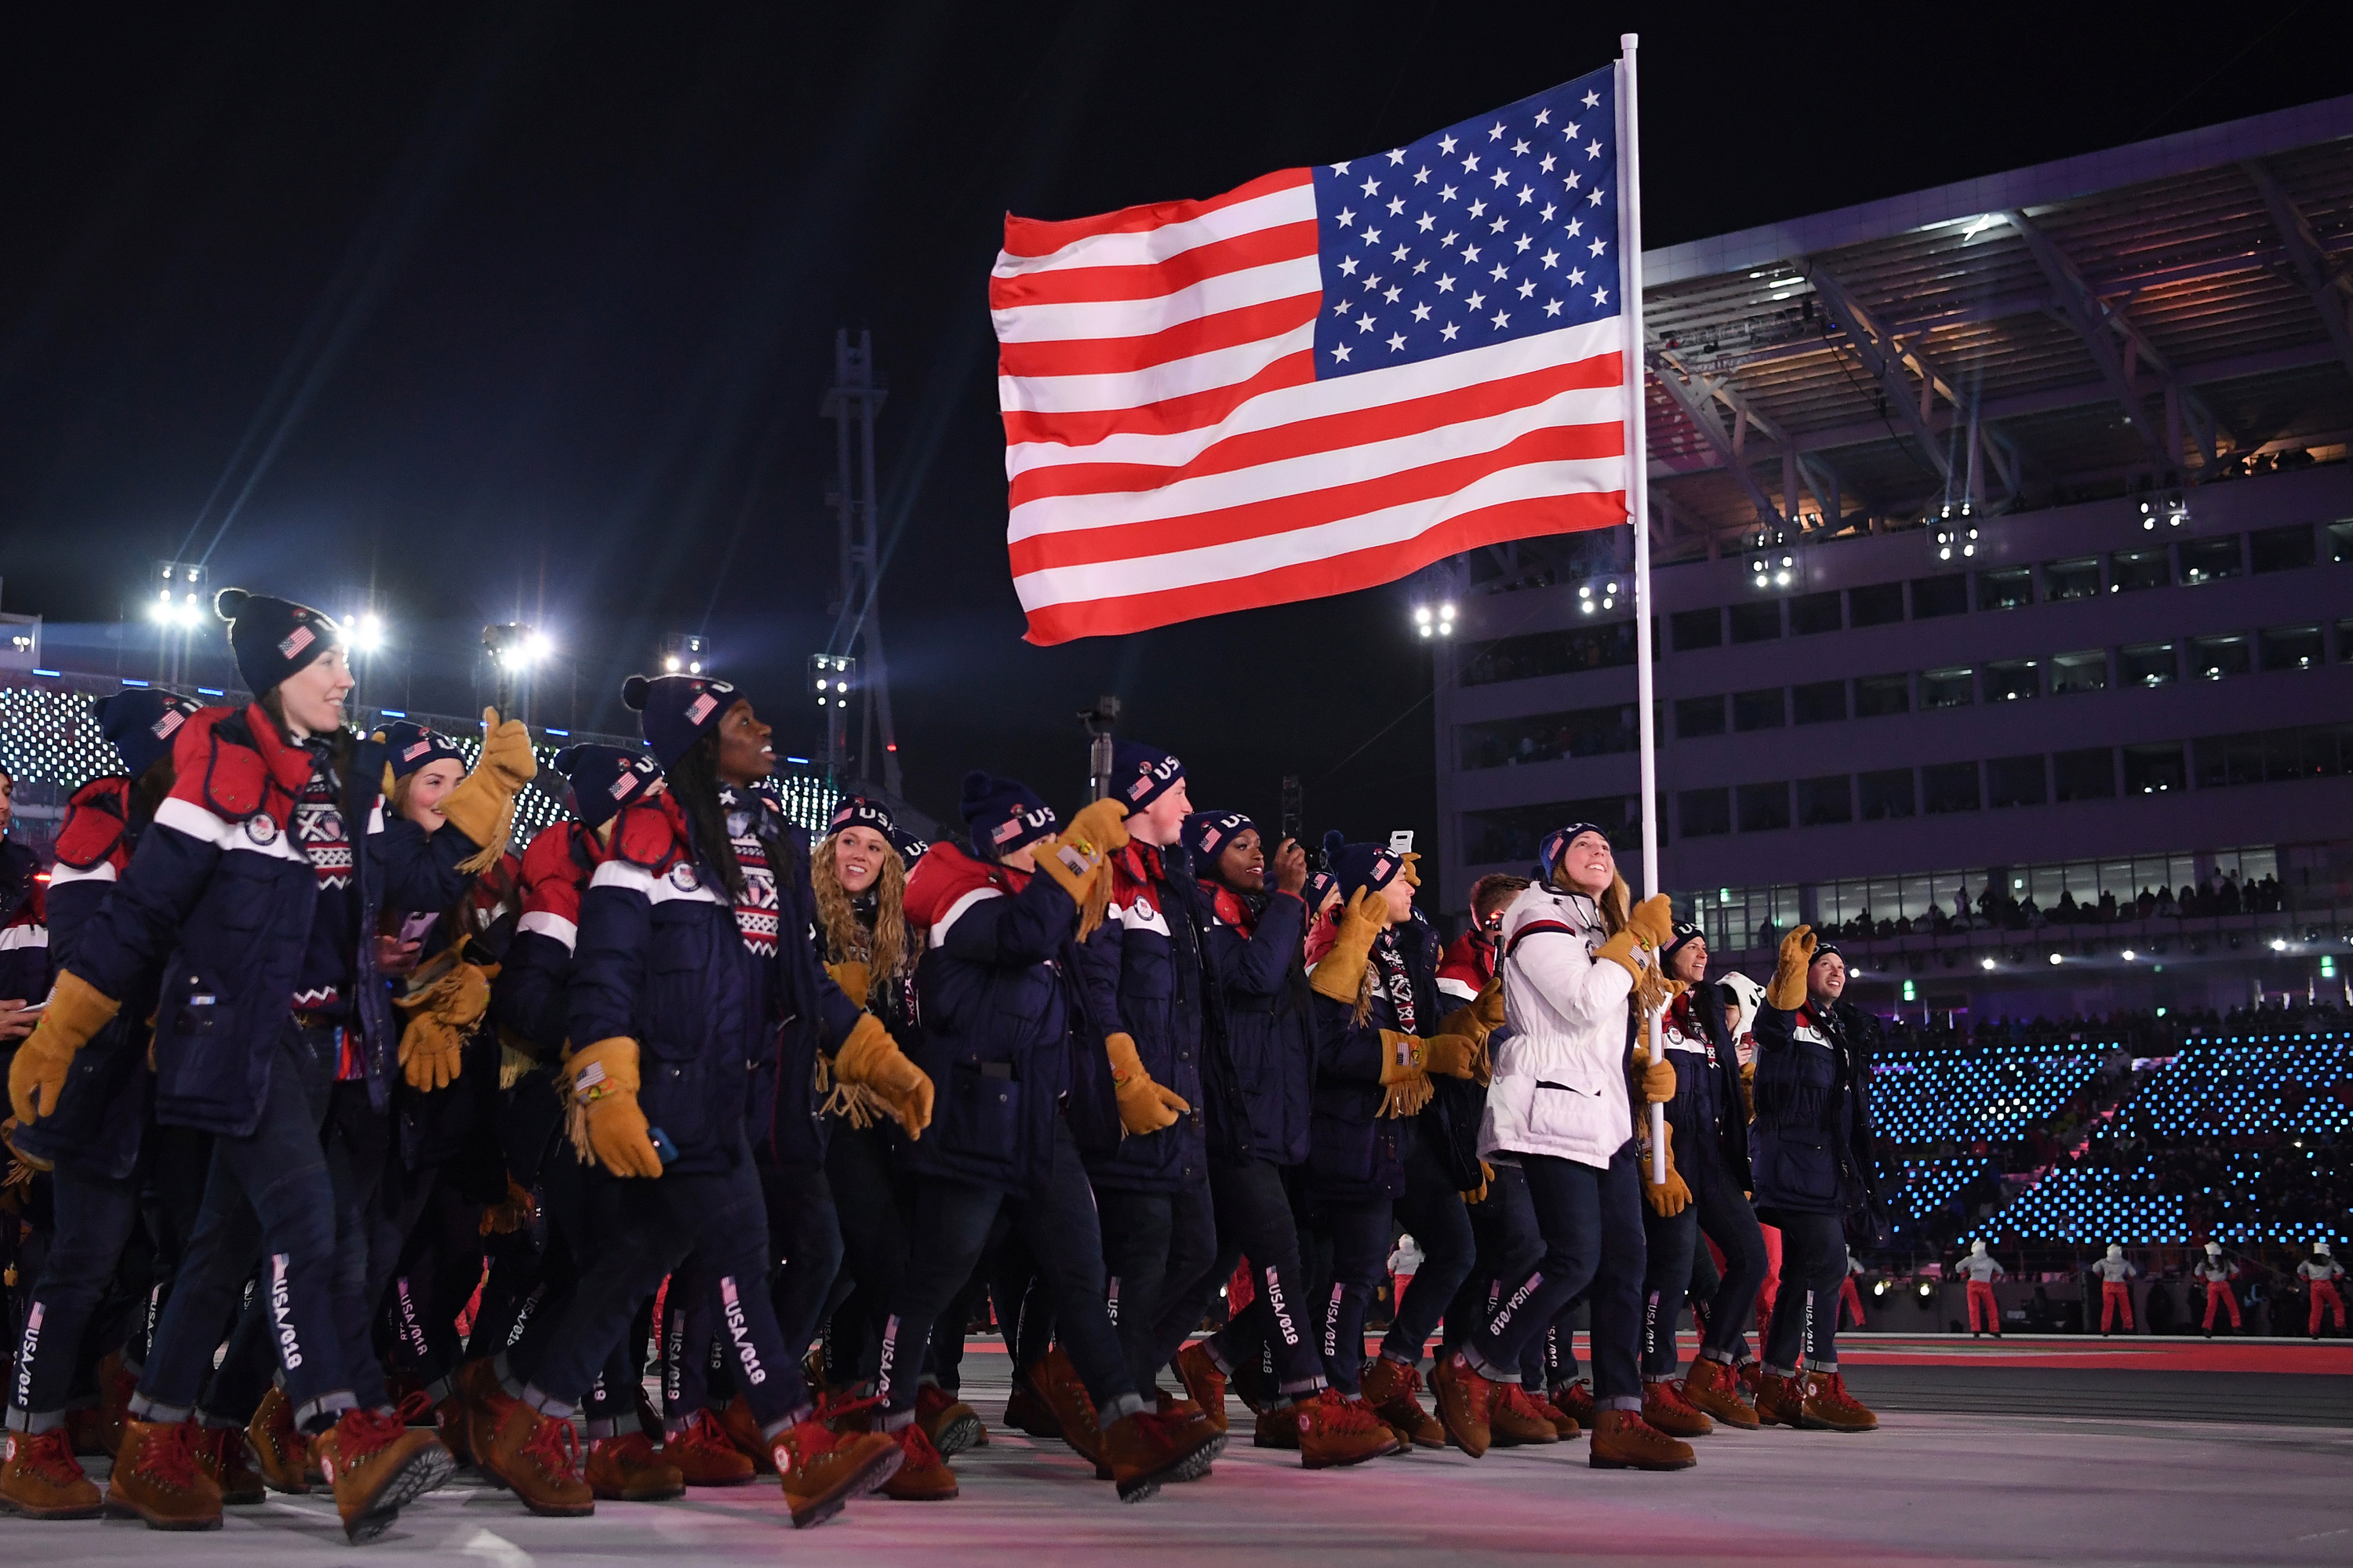 Bigger Than Ever, And More Diverse: Team USA At The 2018 Winter Olympics